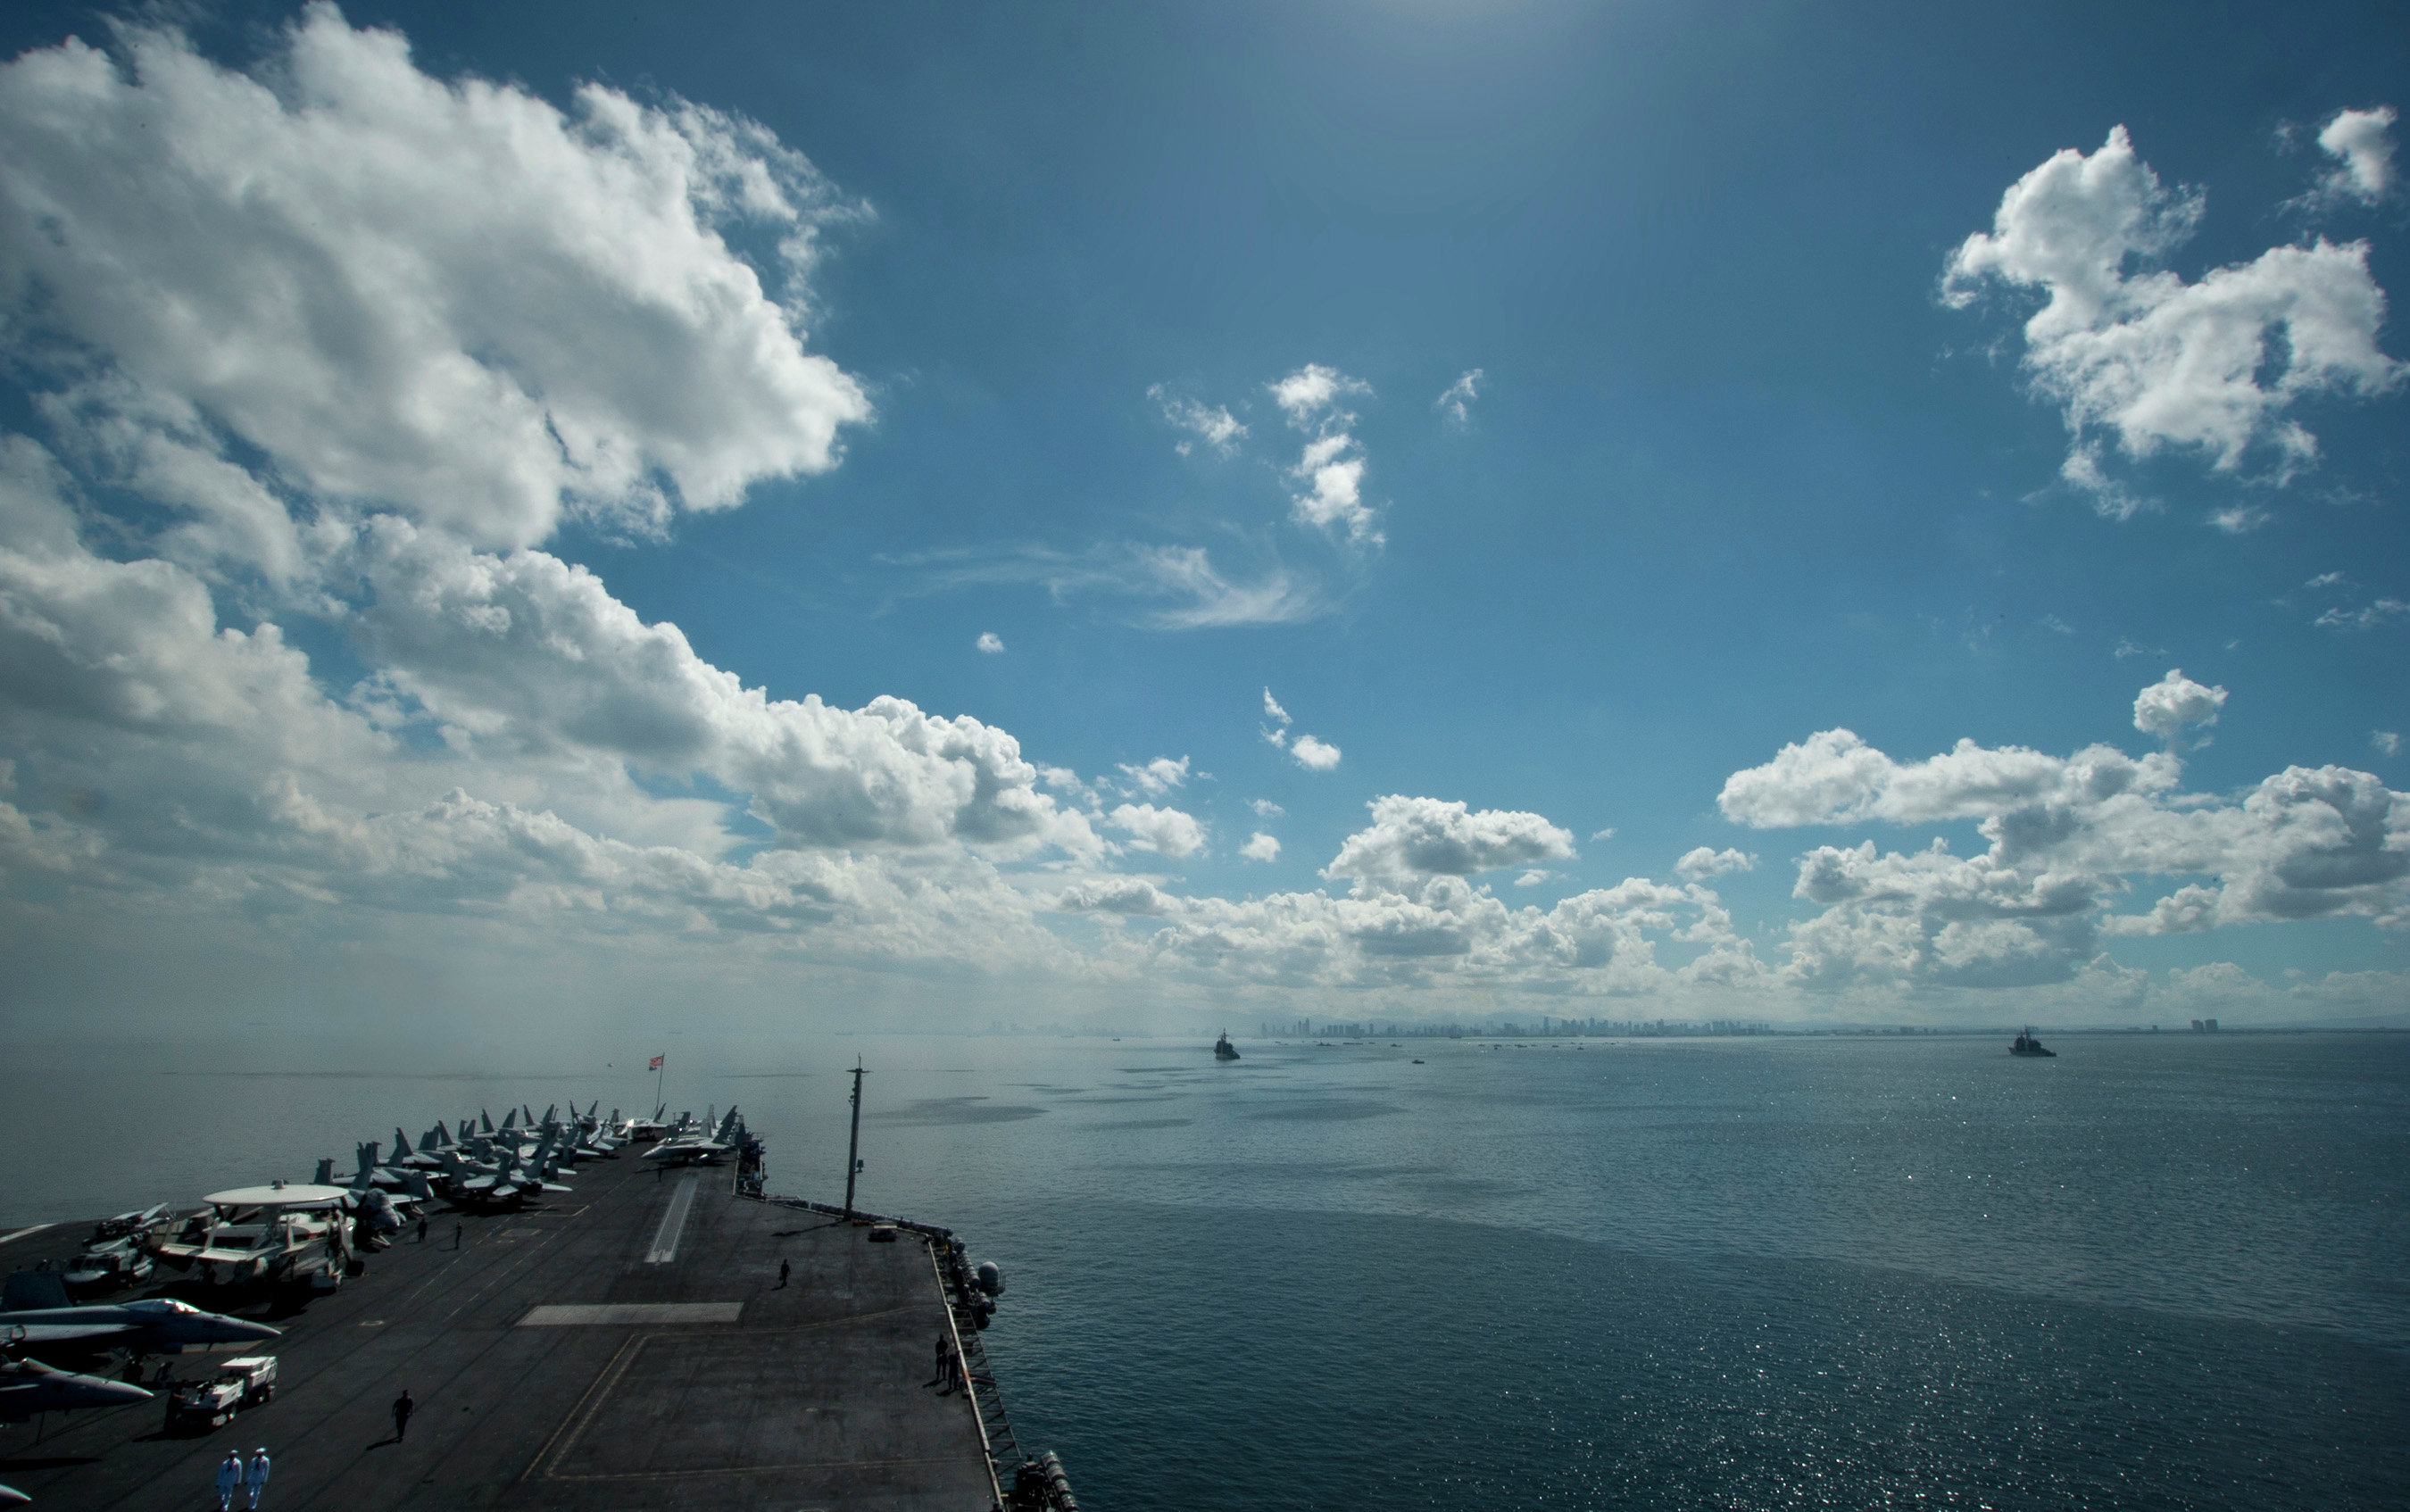 USS Carl Vinson (CVN 70) and ships from the Carl Vinson Carrier Strike Group anchor in Manila Bay.